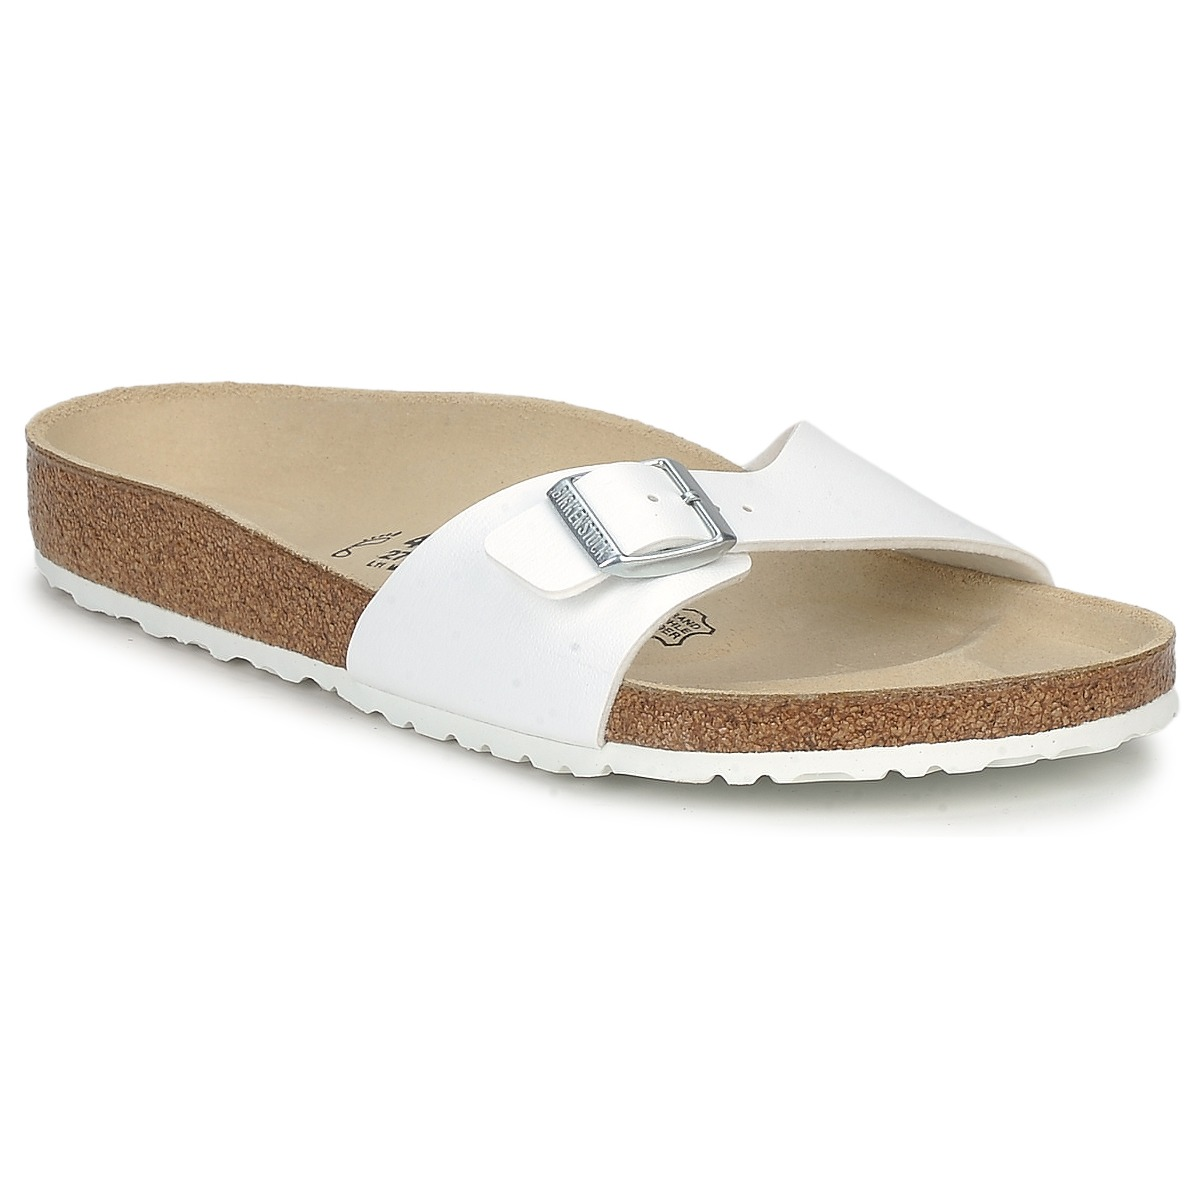 birkenstock madrid blanc livraison gratuite avec chaussures mules homme 54 99. Black Bedroom Furniture Sets. Home Design Ideas